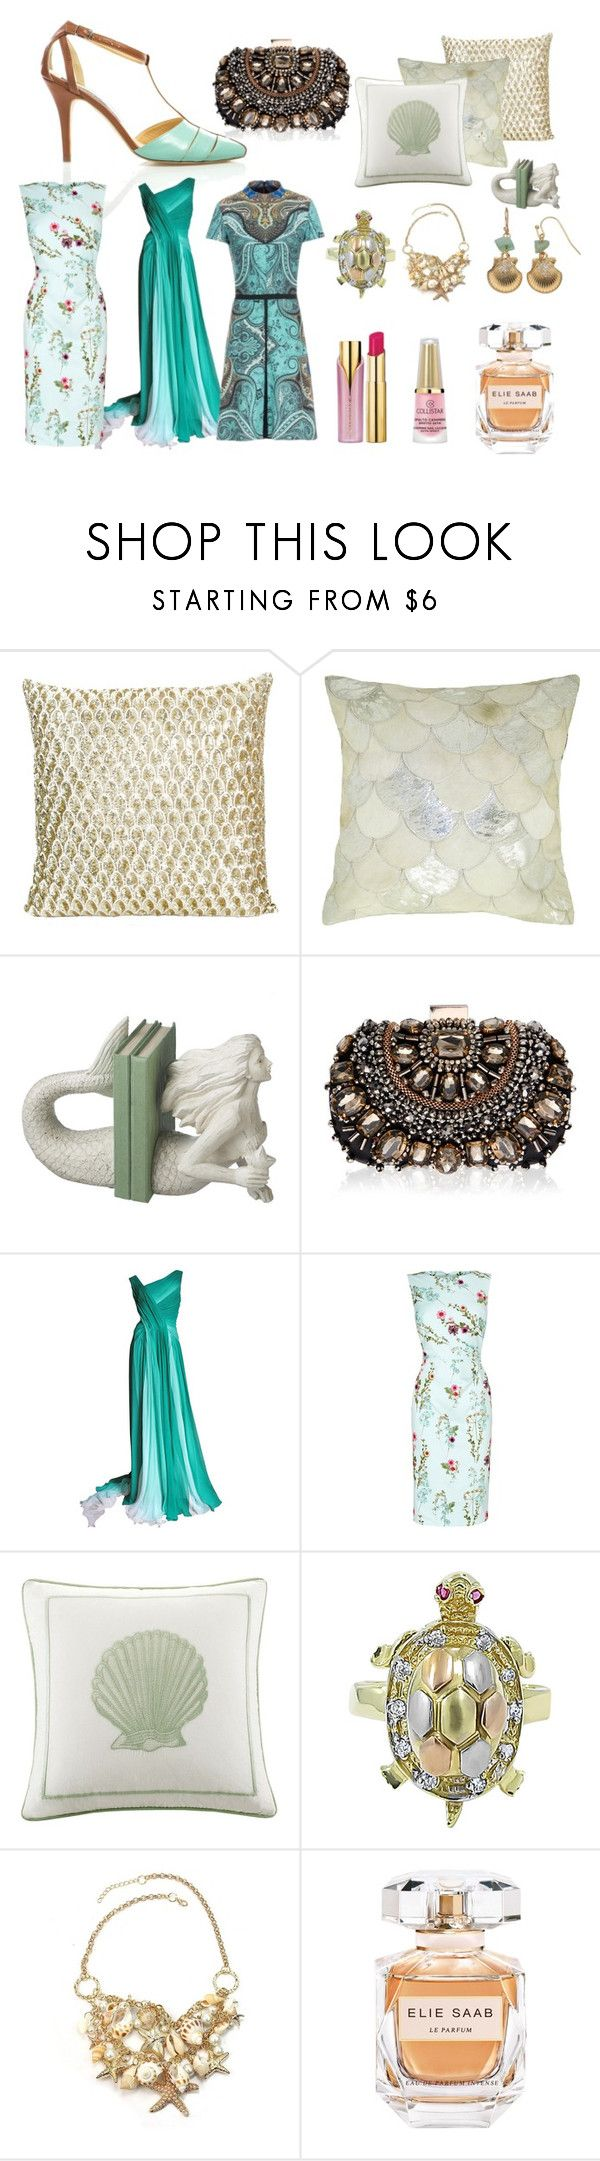 """""""Turquoise Venus"""" by fmeirosu on Polyvore featuring Dot & Bo, Lipsy, Monique Lhuillier, Phase Eight, Elie Saab, LC Lauren Conrad and vintage"""